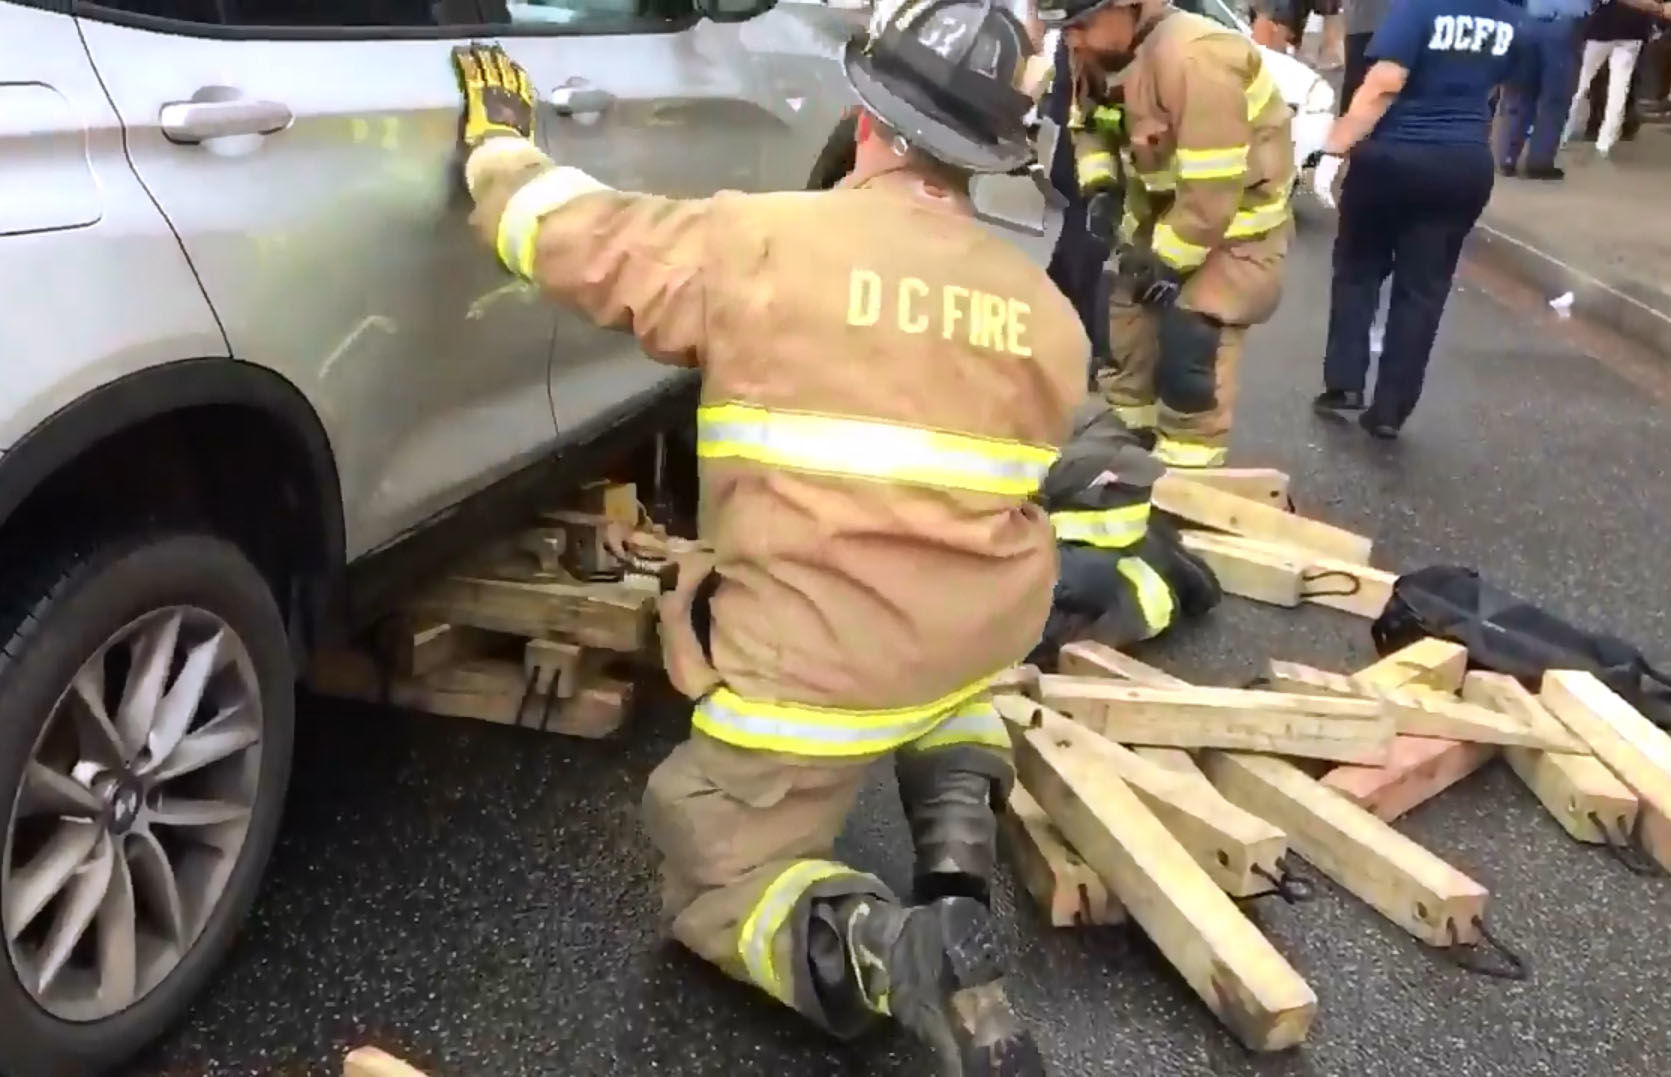 Videos tweeted by the D.C. Fire and EMS Service showed firefighters working to free the man who had become trapped under a silver SUV. (Courtesy D.C. Fire and EMS)